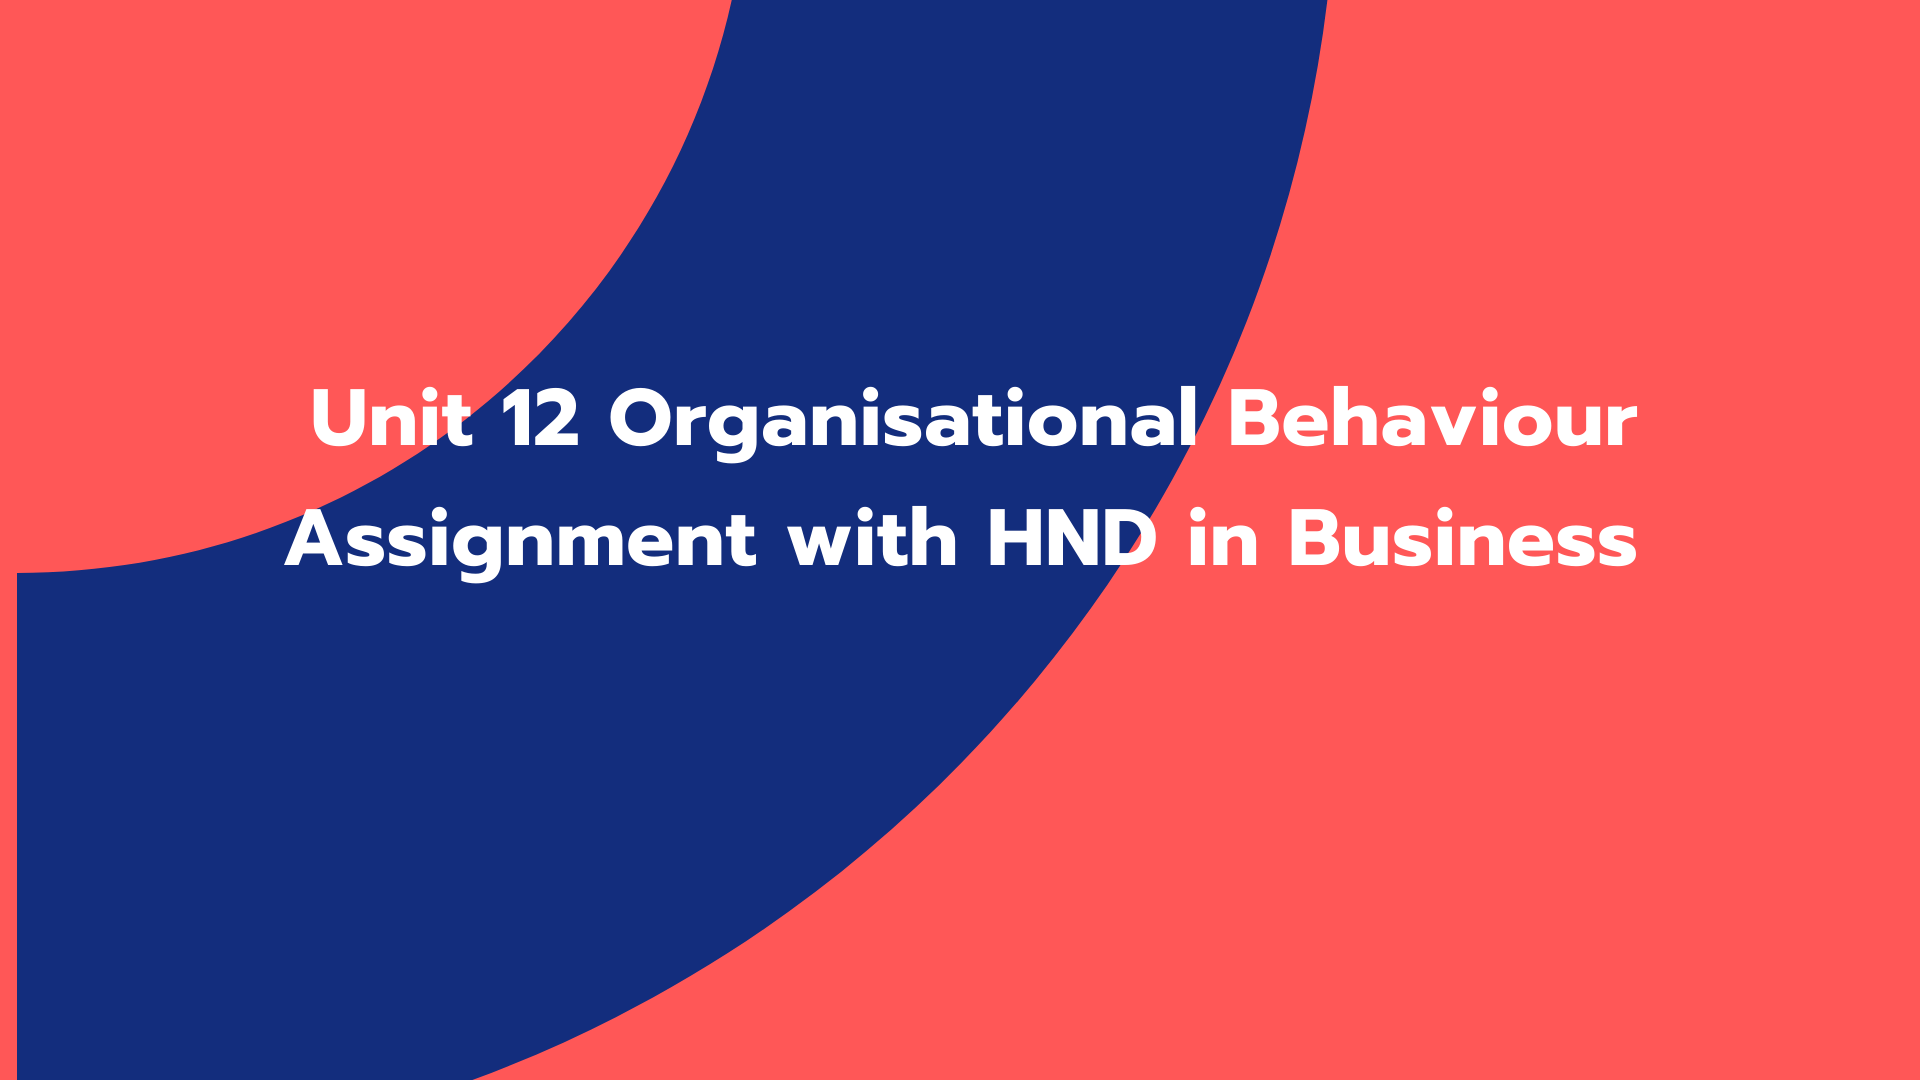 Unit 12 Organisational Behaviour Assignment with HND in Business